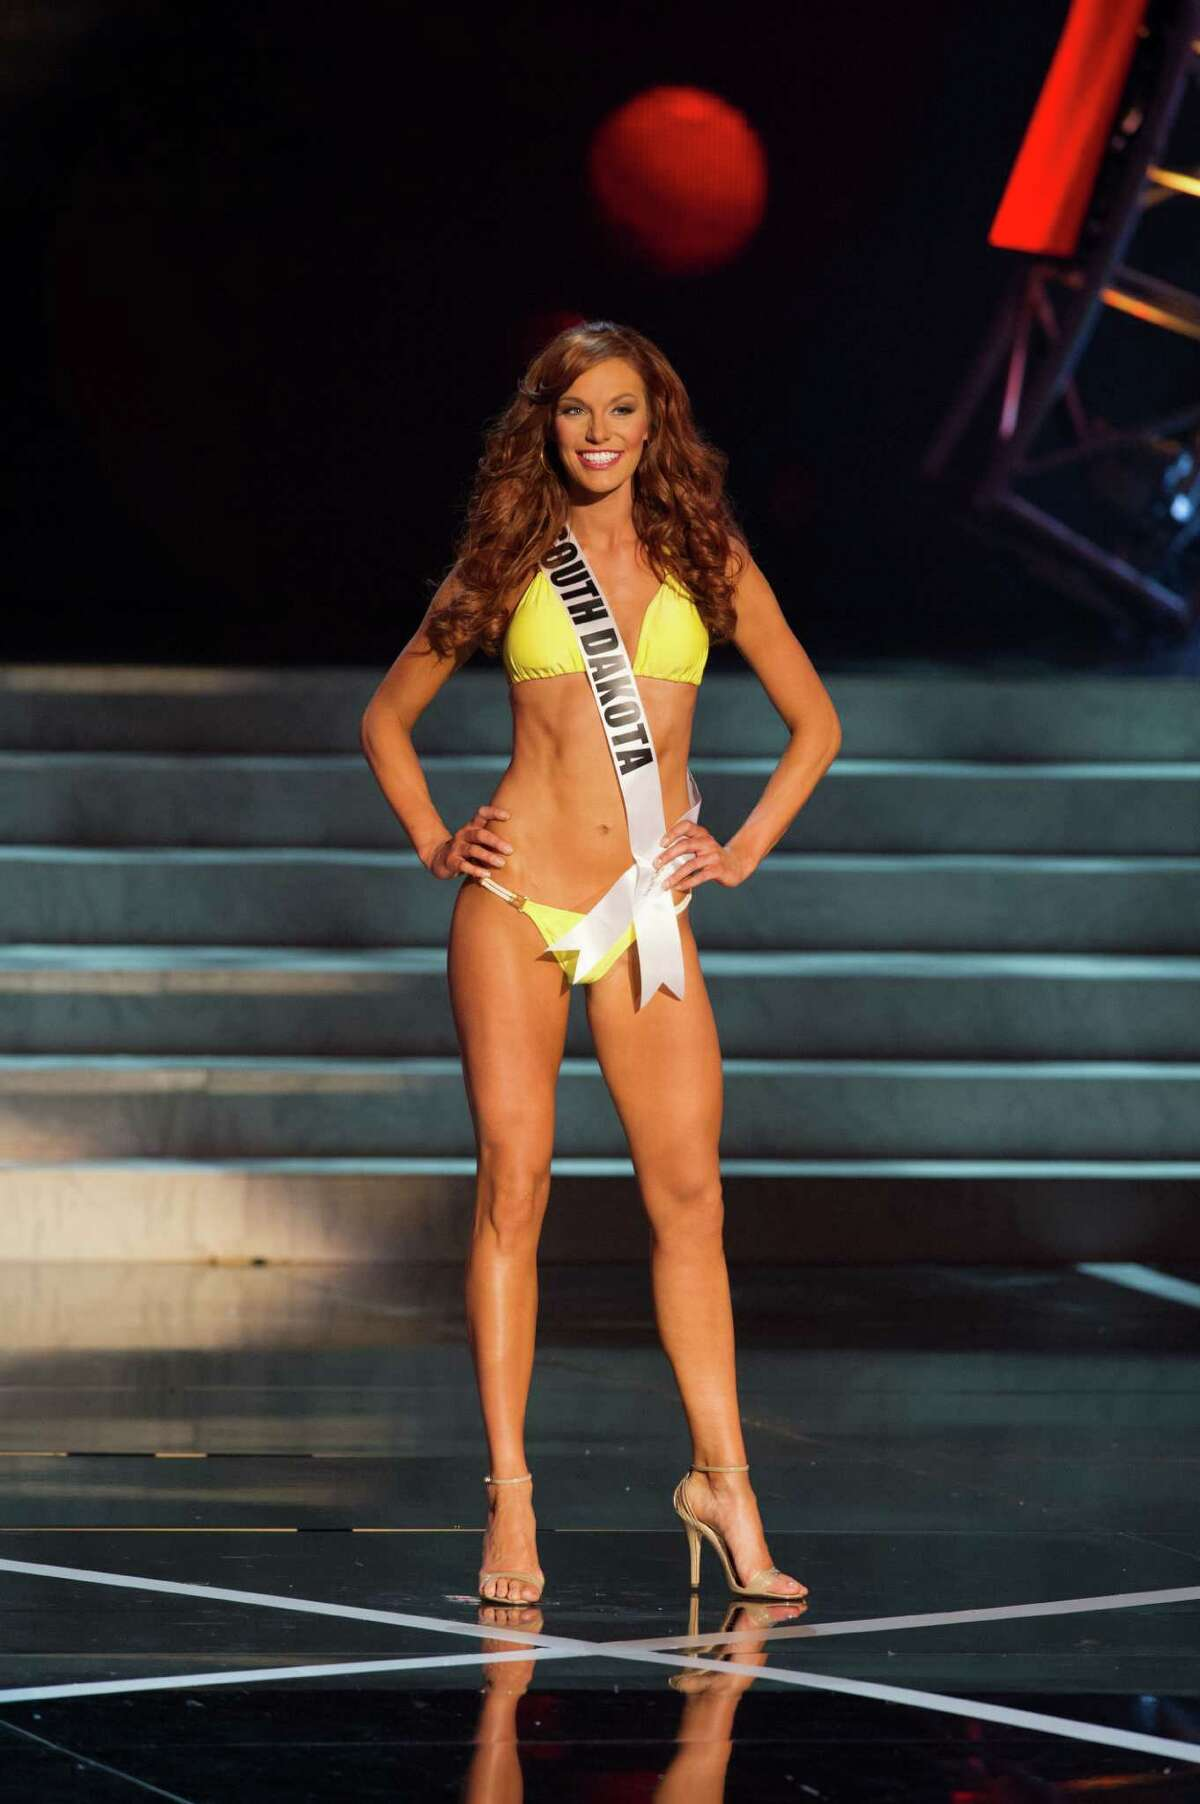 In this photo provided by the Miss Universe Organization, Miss South Dakota USA 2013, Jessica Albers, competes in her swimsuit during the 2013 Miss USA Competition Preliminary Show in Las Vegas on Wednesday June 12, 2013. She will compete for the title of Miss USA 2013 and the coveted Miss USA Diamond Nexus Crown on June 16, 2013.